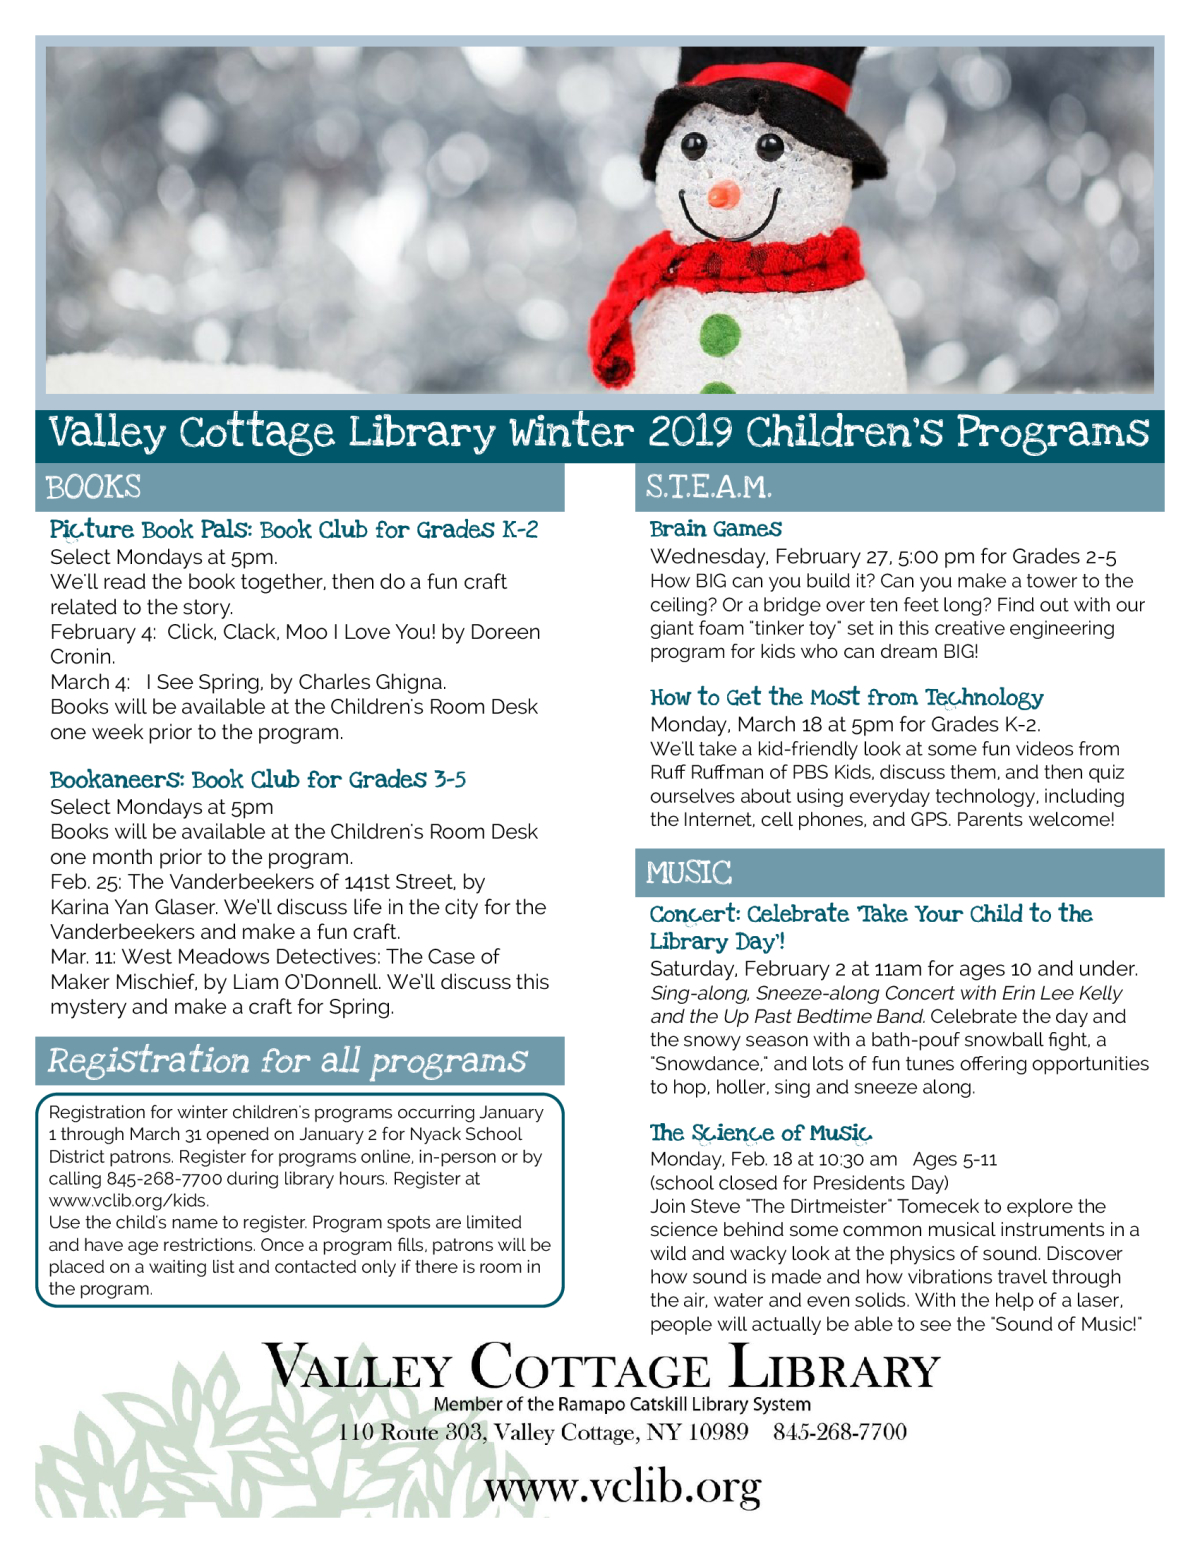 Image of a flyer titled Valley Cottage Library Winter 2019 Children's Programs